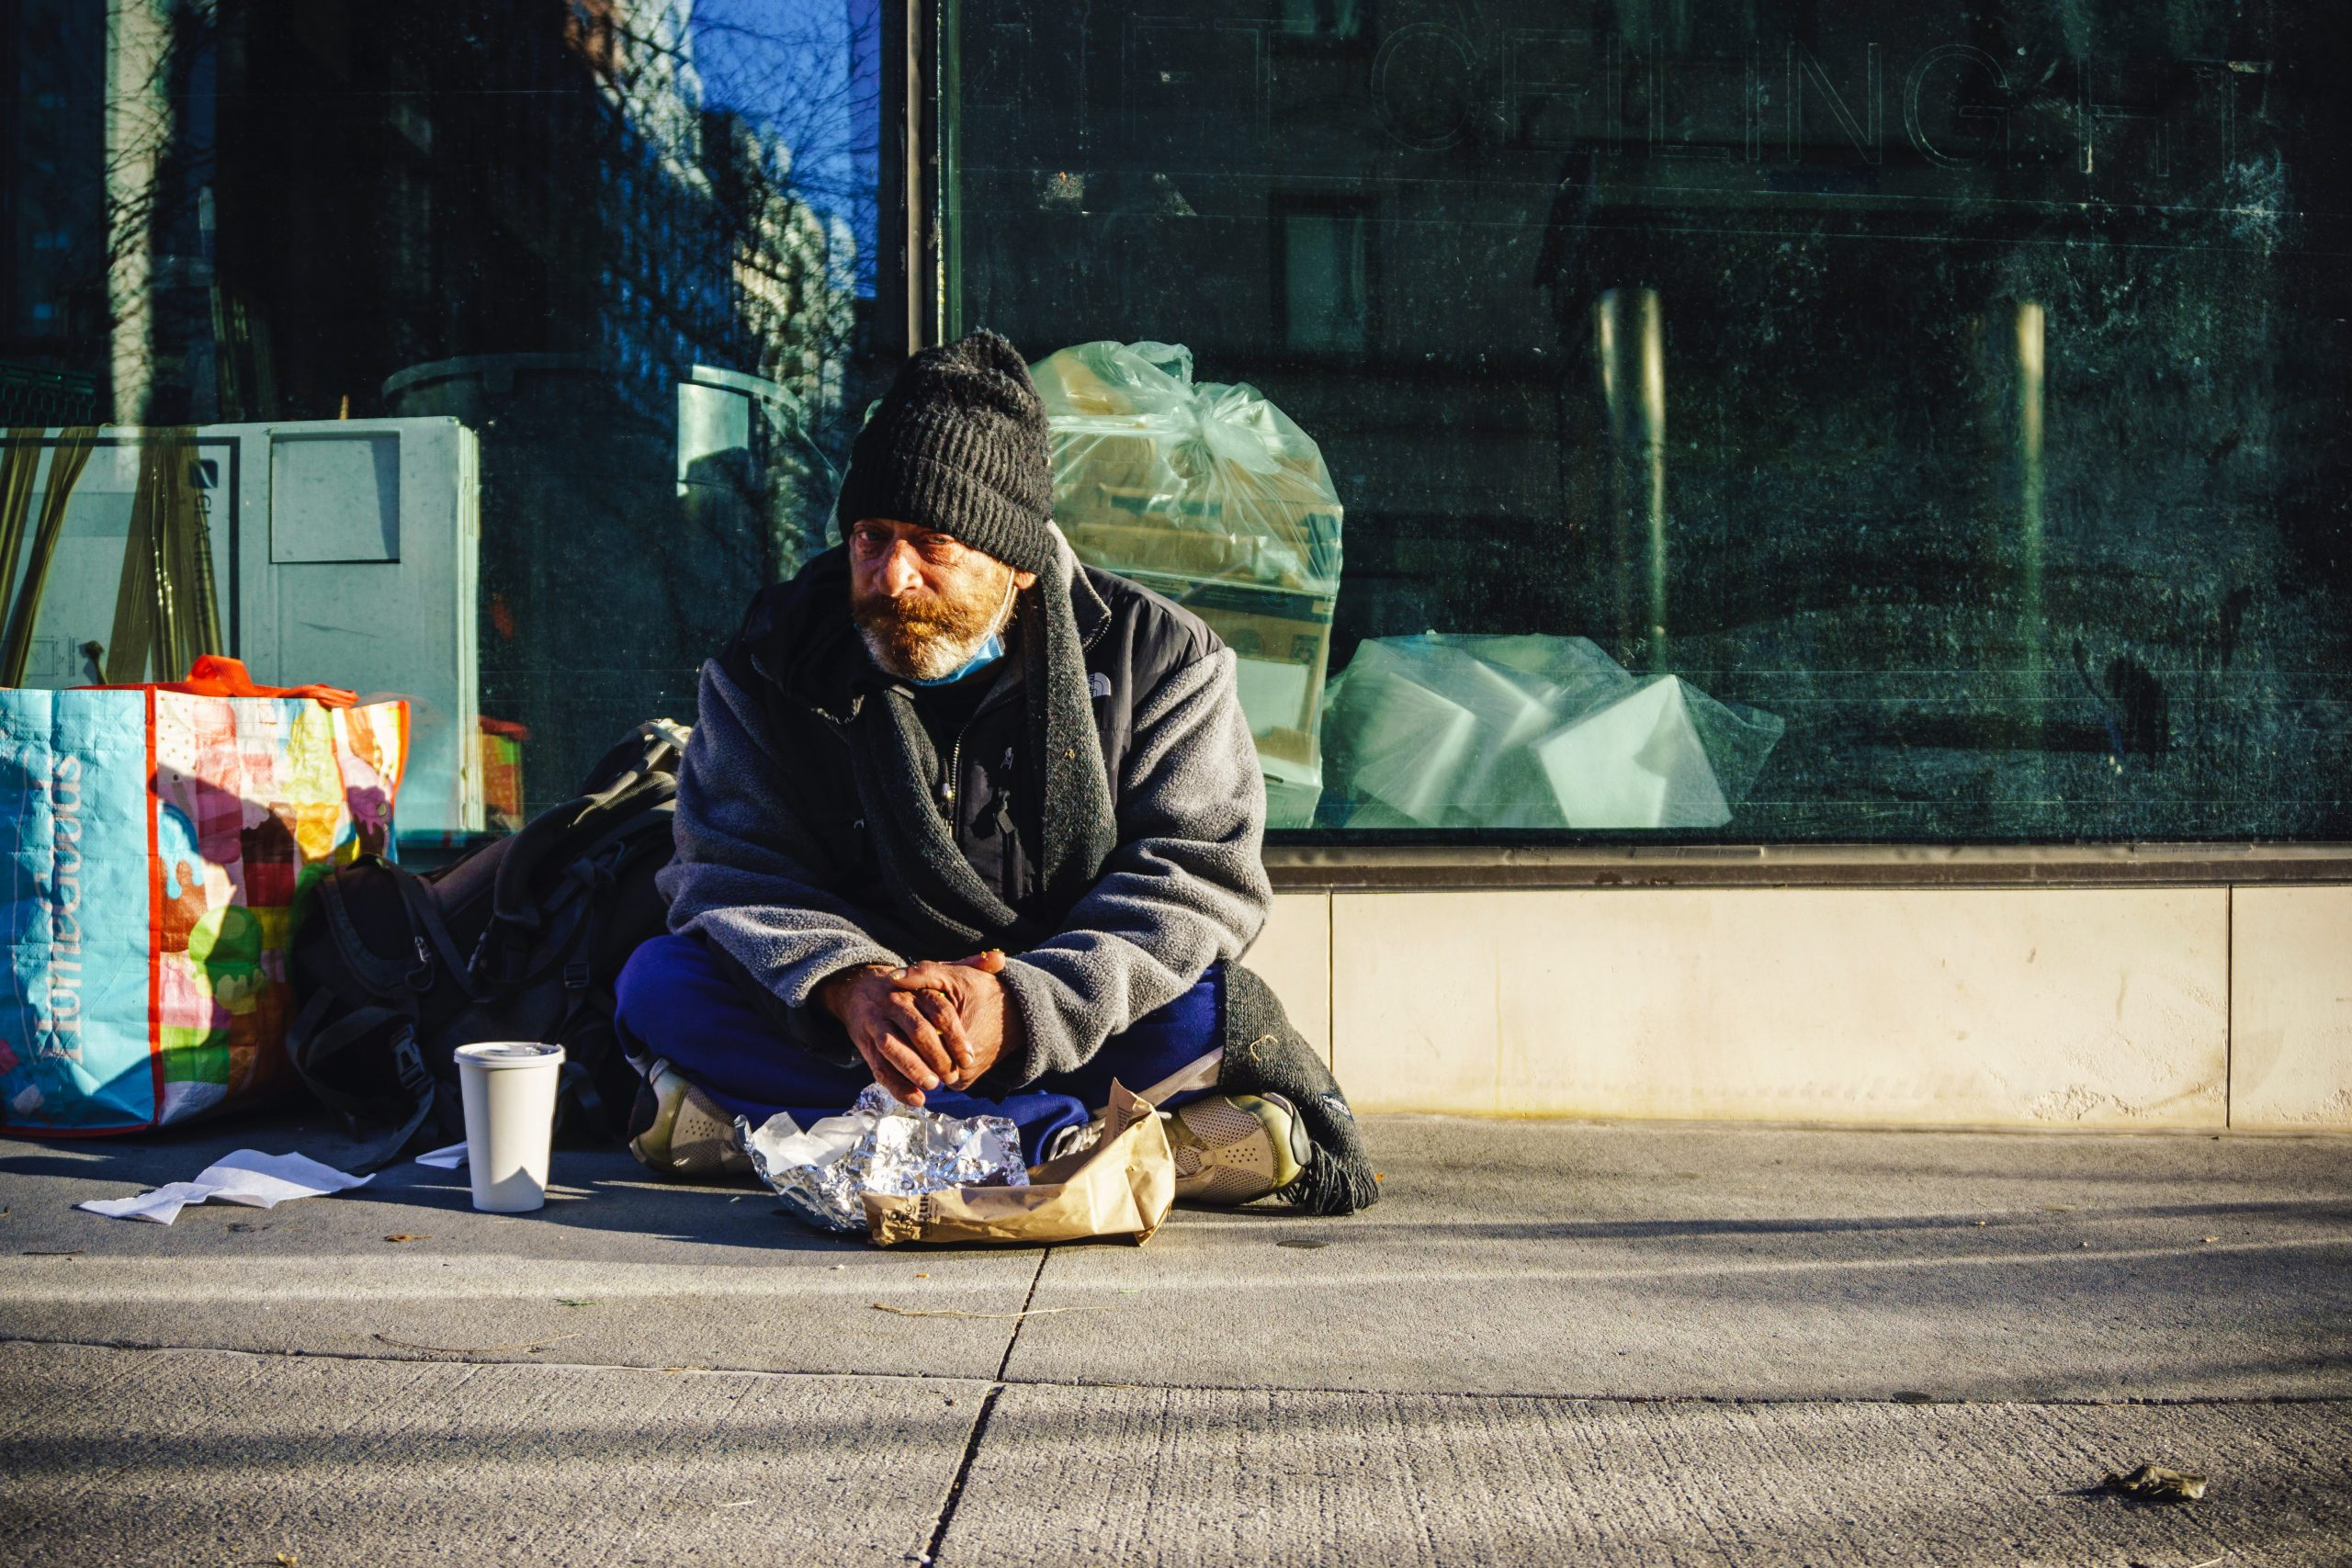 A homeless man sits on the pavement surrounded by his belongings. He is wearing black clothing and is looking right down the lens of the camera.